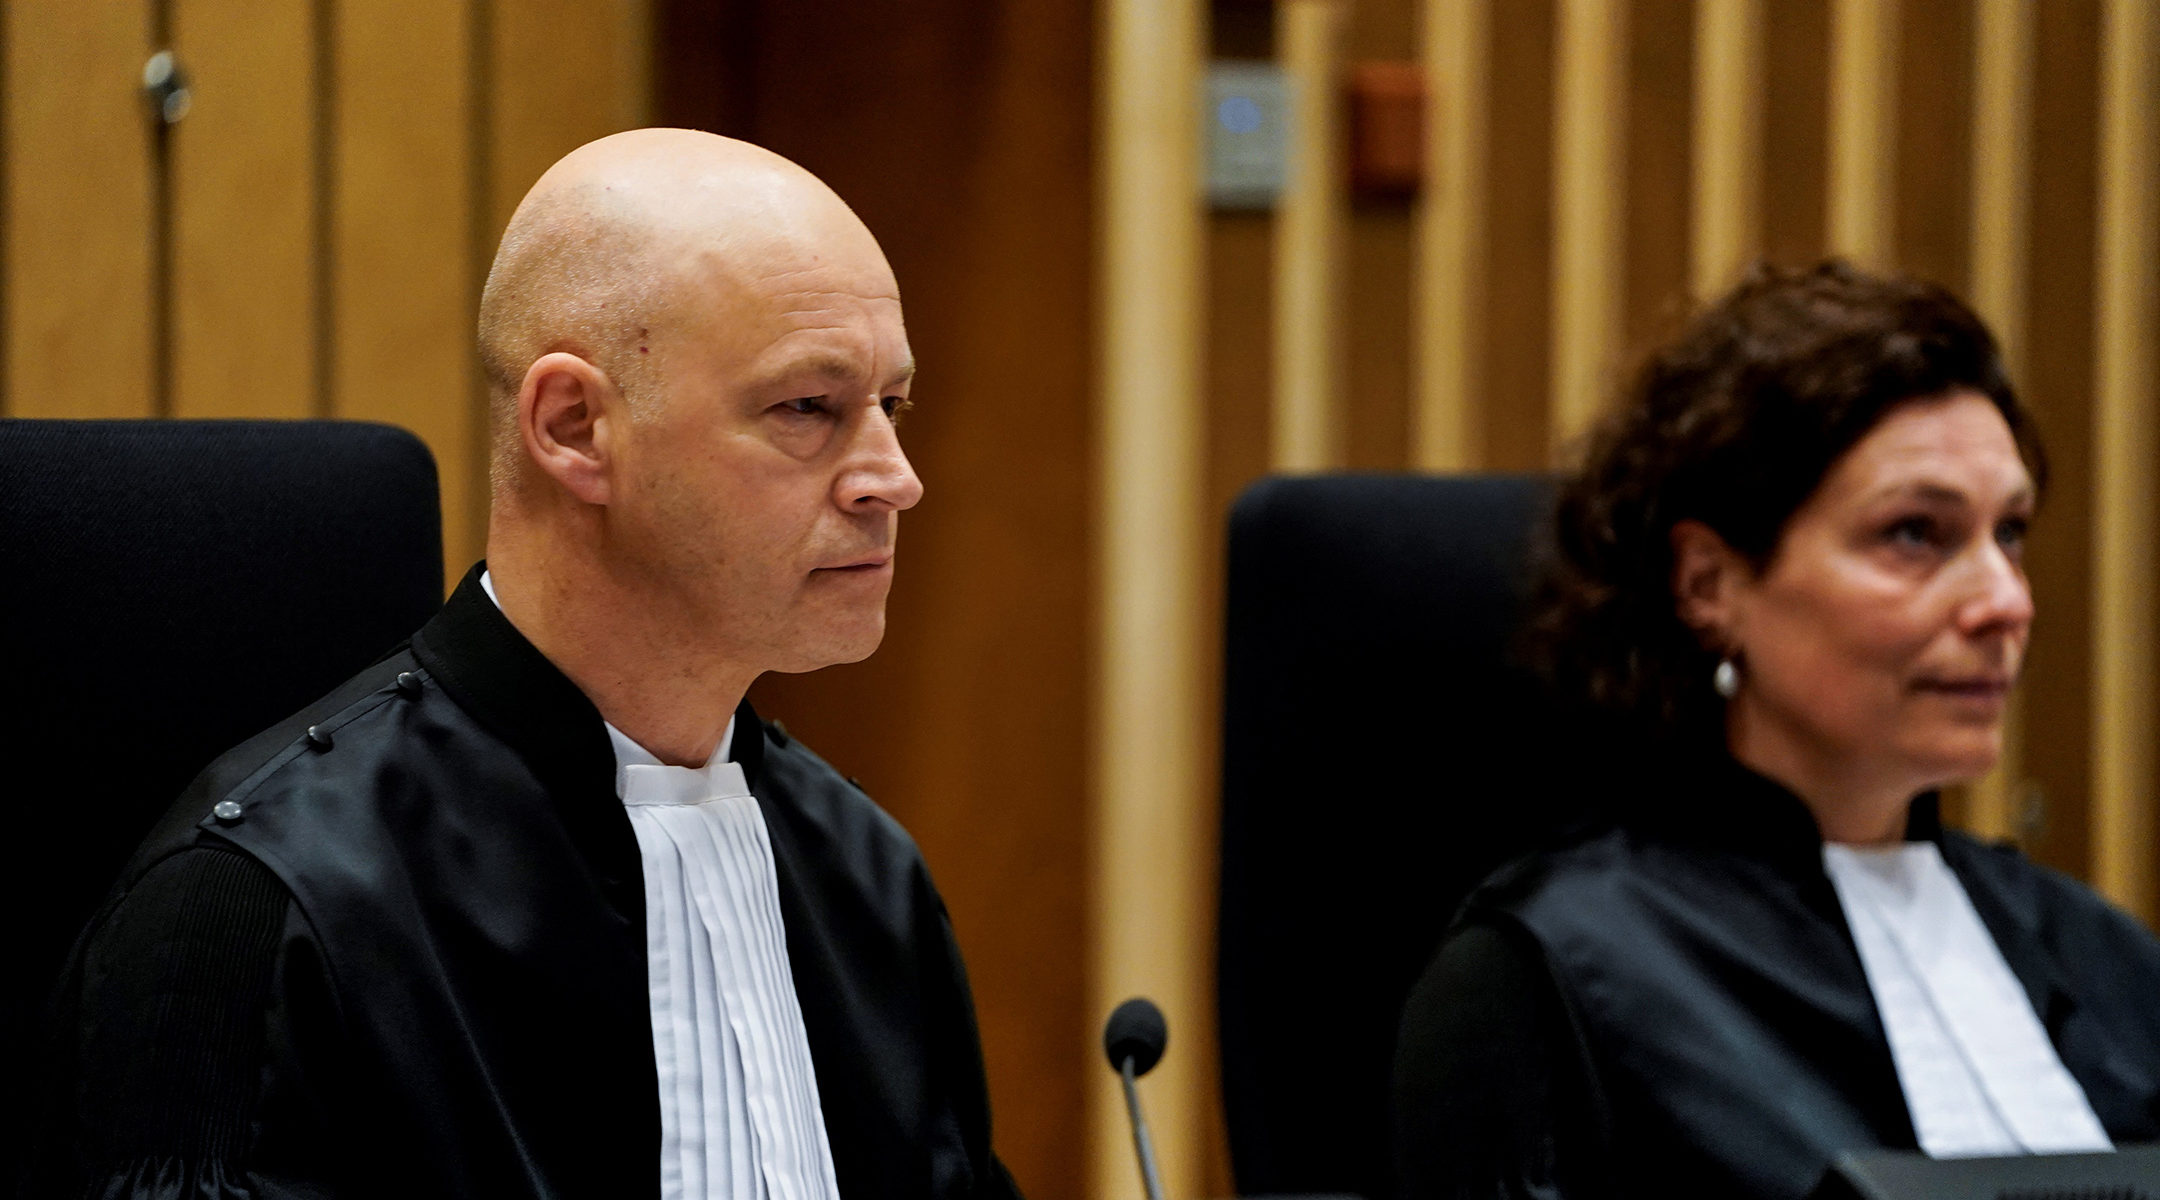 A Dutch judge, Hendrik Steenhuis, presides over a hearing at Schiphol Judicial Court (JCS) complex in Badhoevedorp, the Netherlands on March 9, 2020 (Kenzo Tribouillard/AFP via Getty Images)